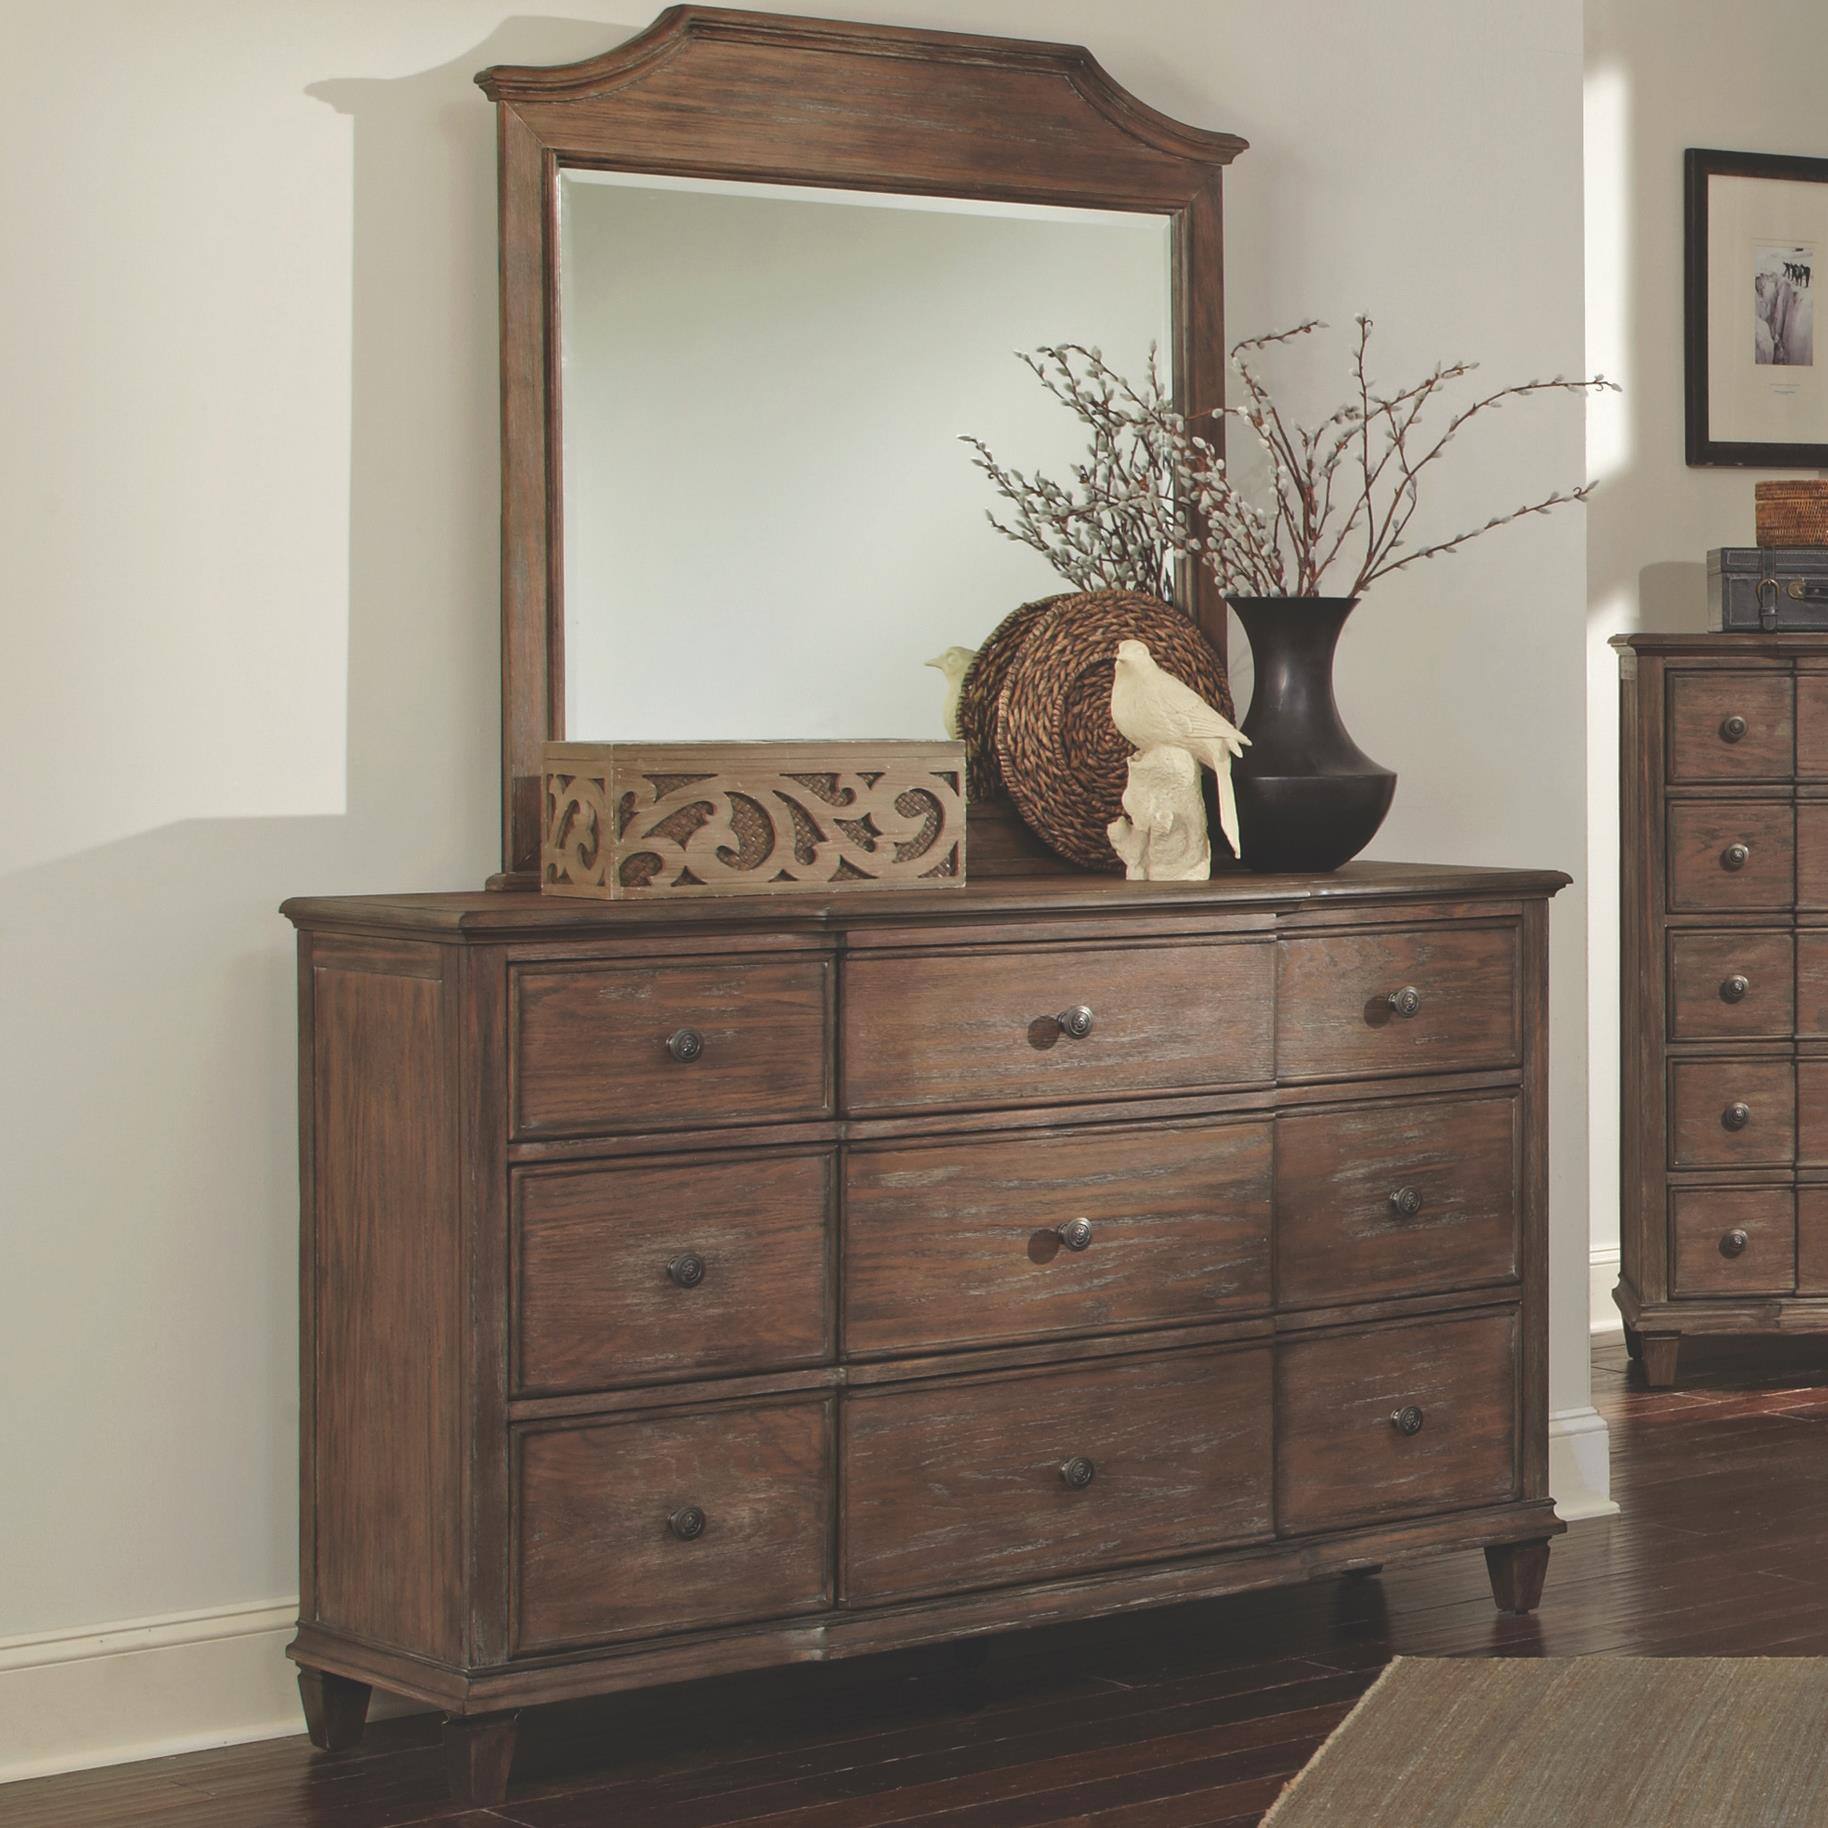 Coaster Dalgarno Dresser with 9 Drawers and Mirror Set - Item Number: 204244+204243